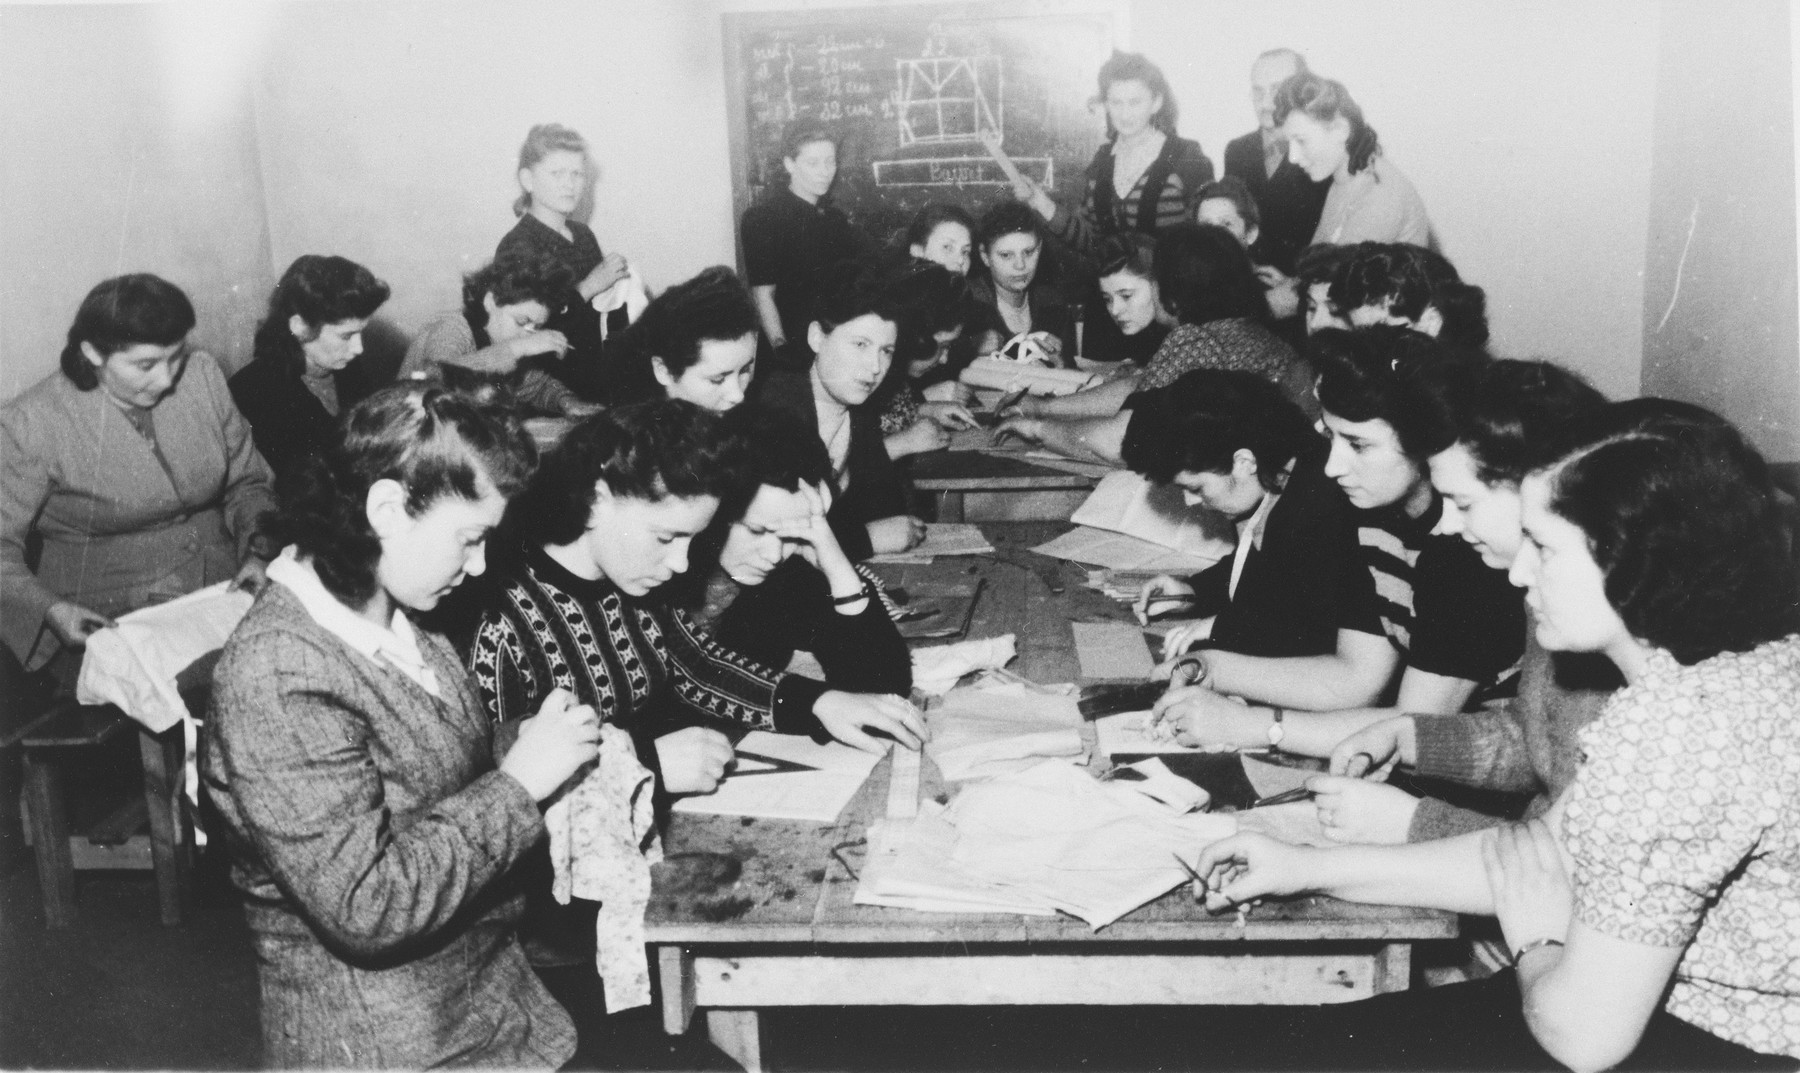 Women do hand sewing in an ORT vocational school in the Zeilsheim displaced persons' camp.  Among those pictured is Fayga Galas, on the left with her hand raised.